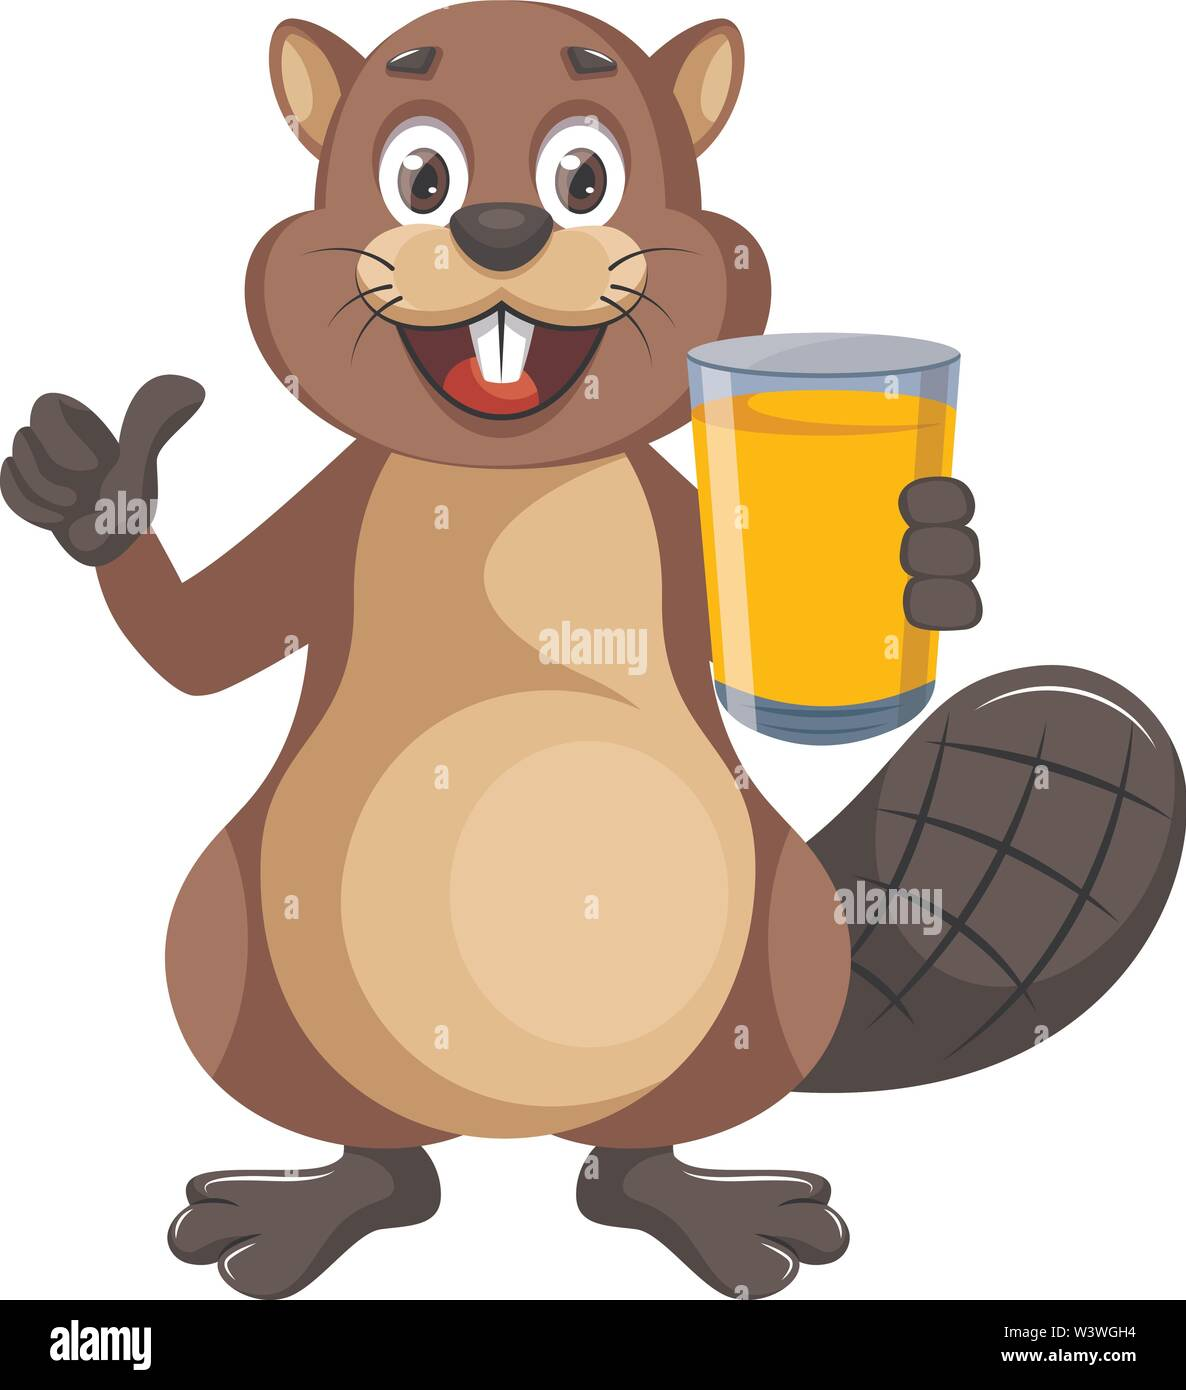 Beaver with juice, illustration, vector on white background. - Stock Image